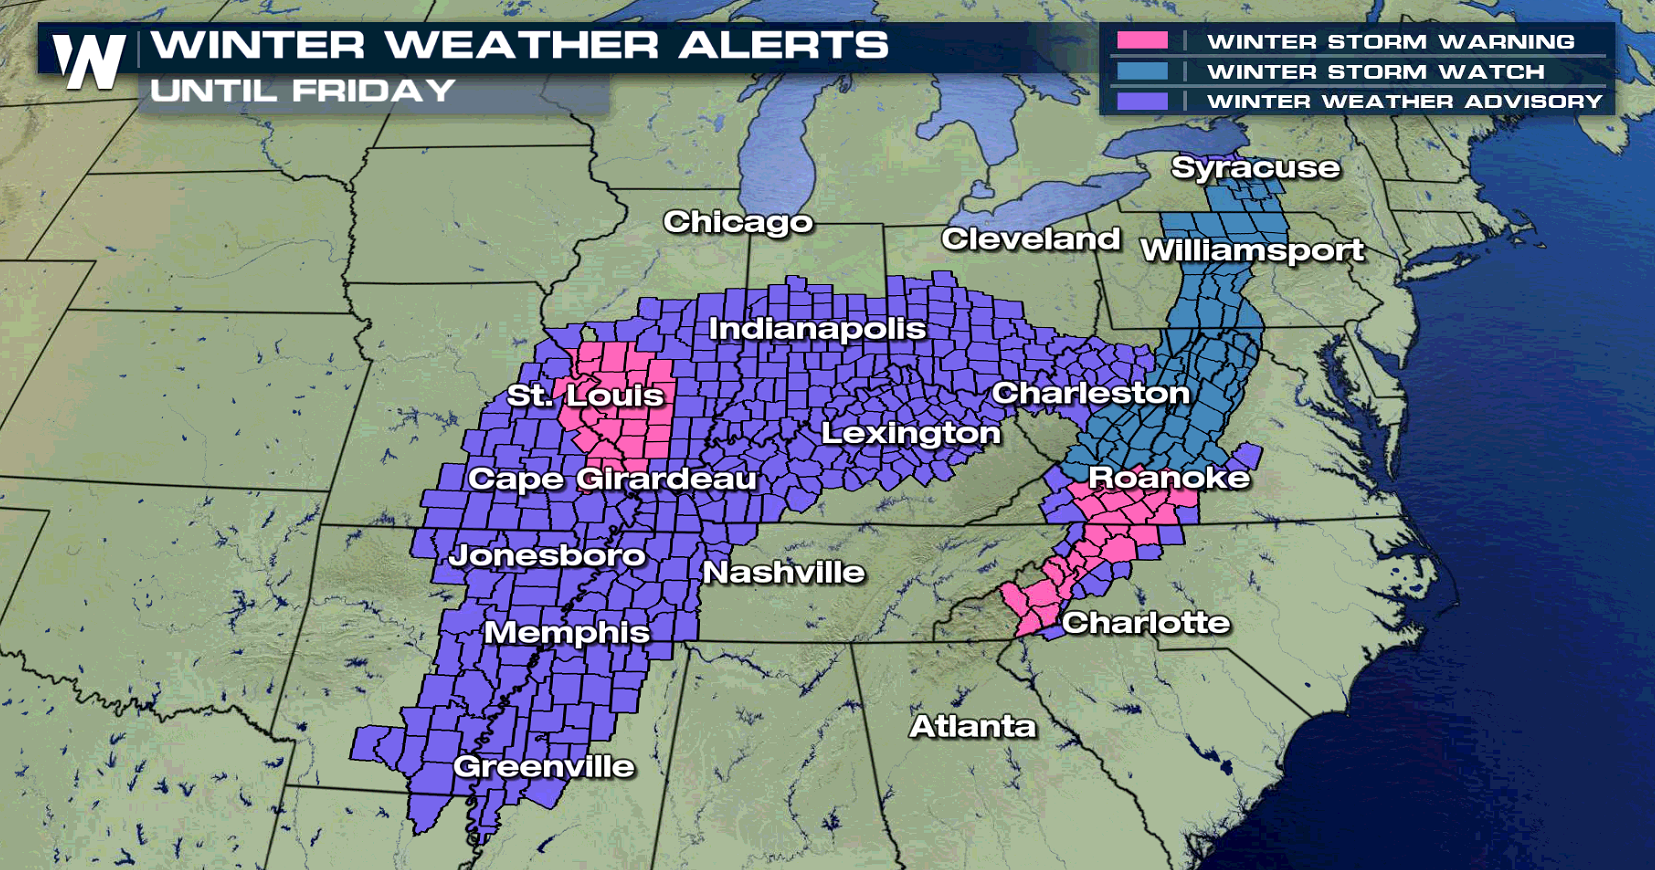 Snow and Wintry Mix Ahead from the Mid-South to the Appalachians